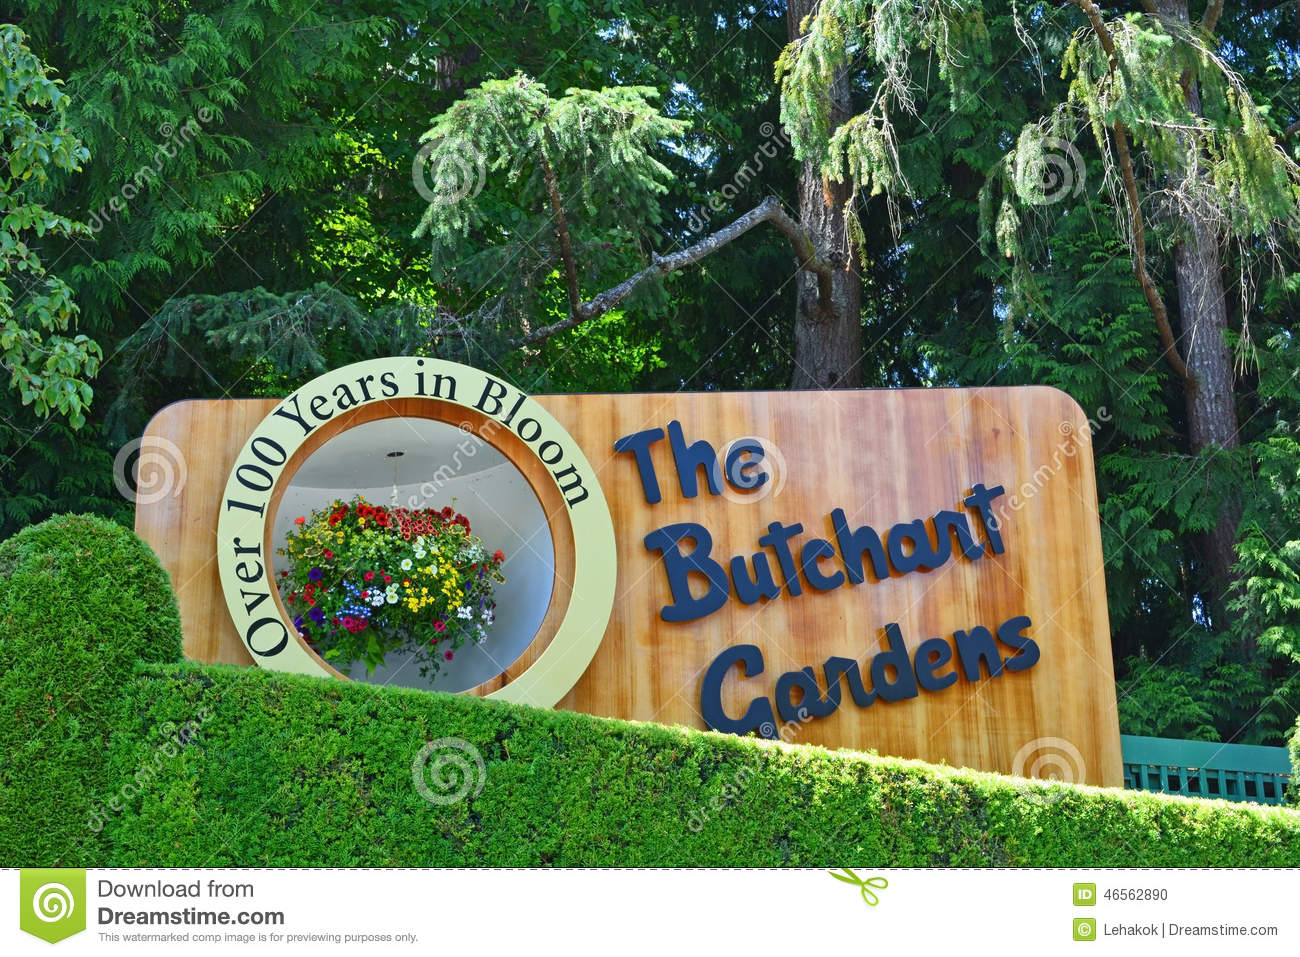 The sign of the butchart gardens